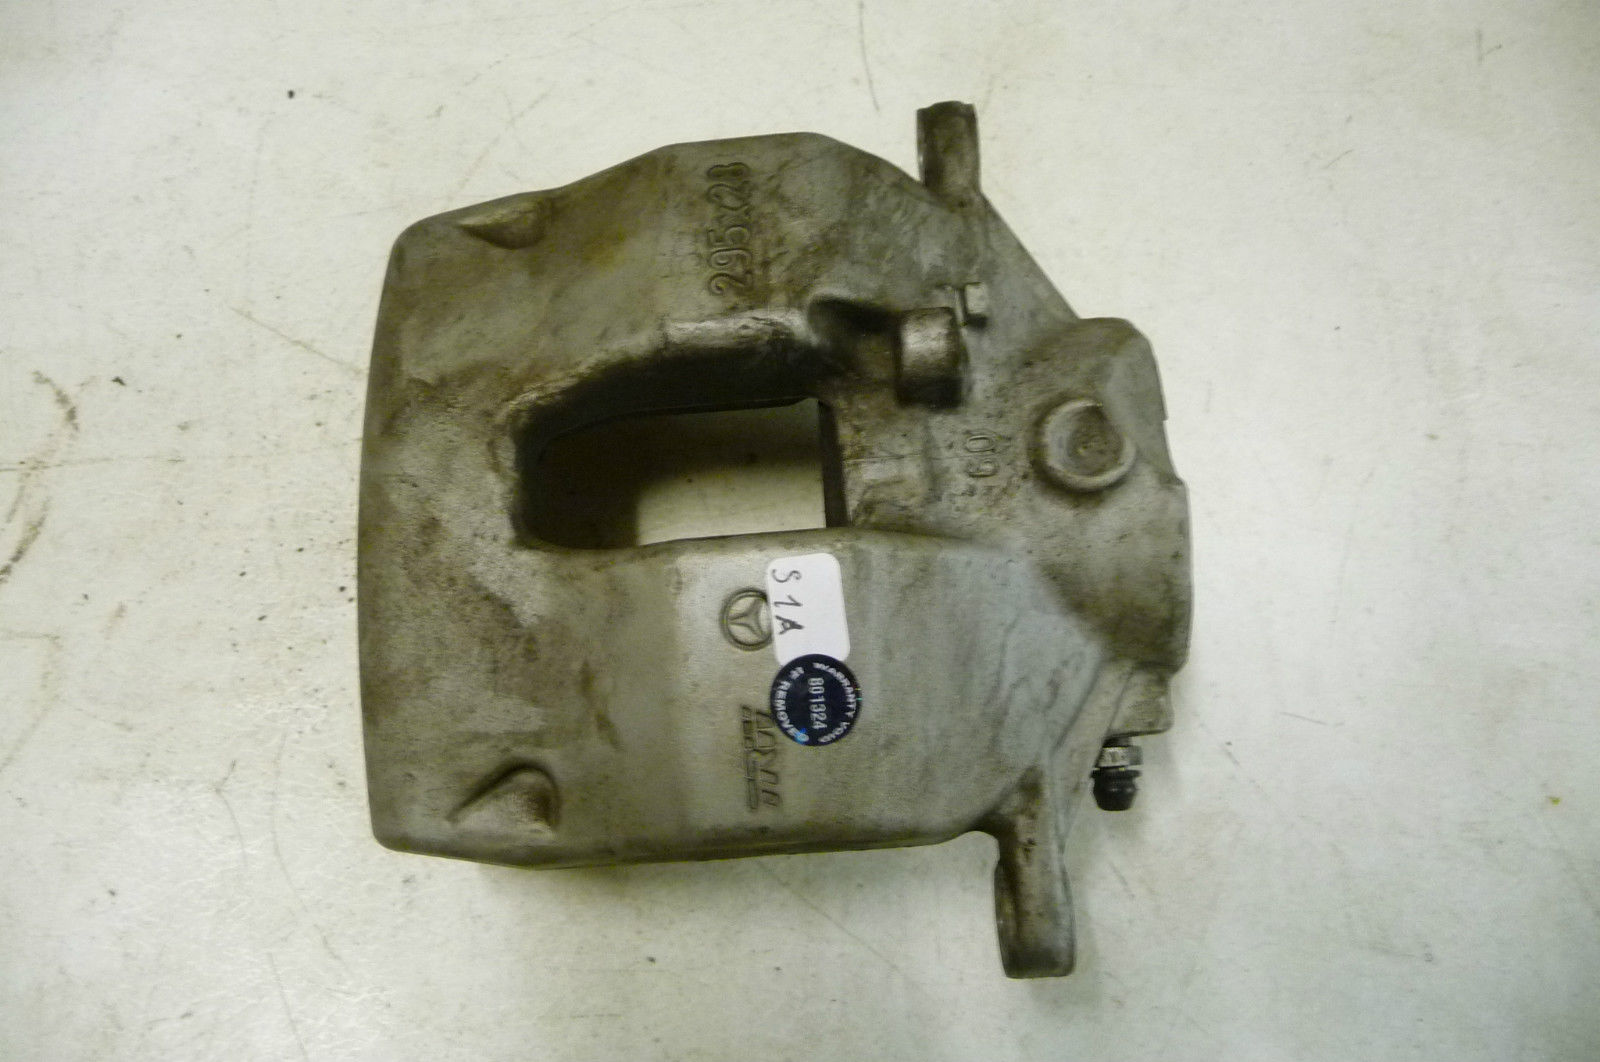 Mercedes Benz Front Wheel Brake Caliper Right without guide sleeve 2044212681 OE